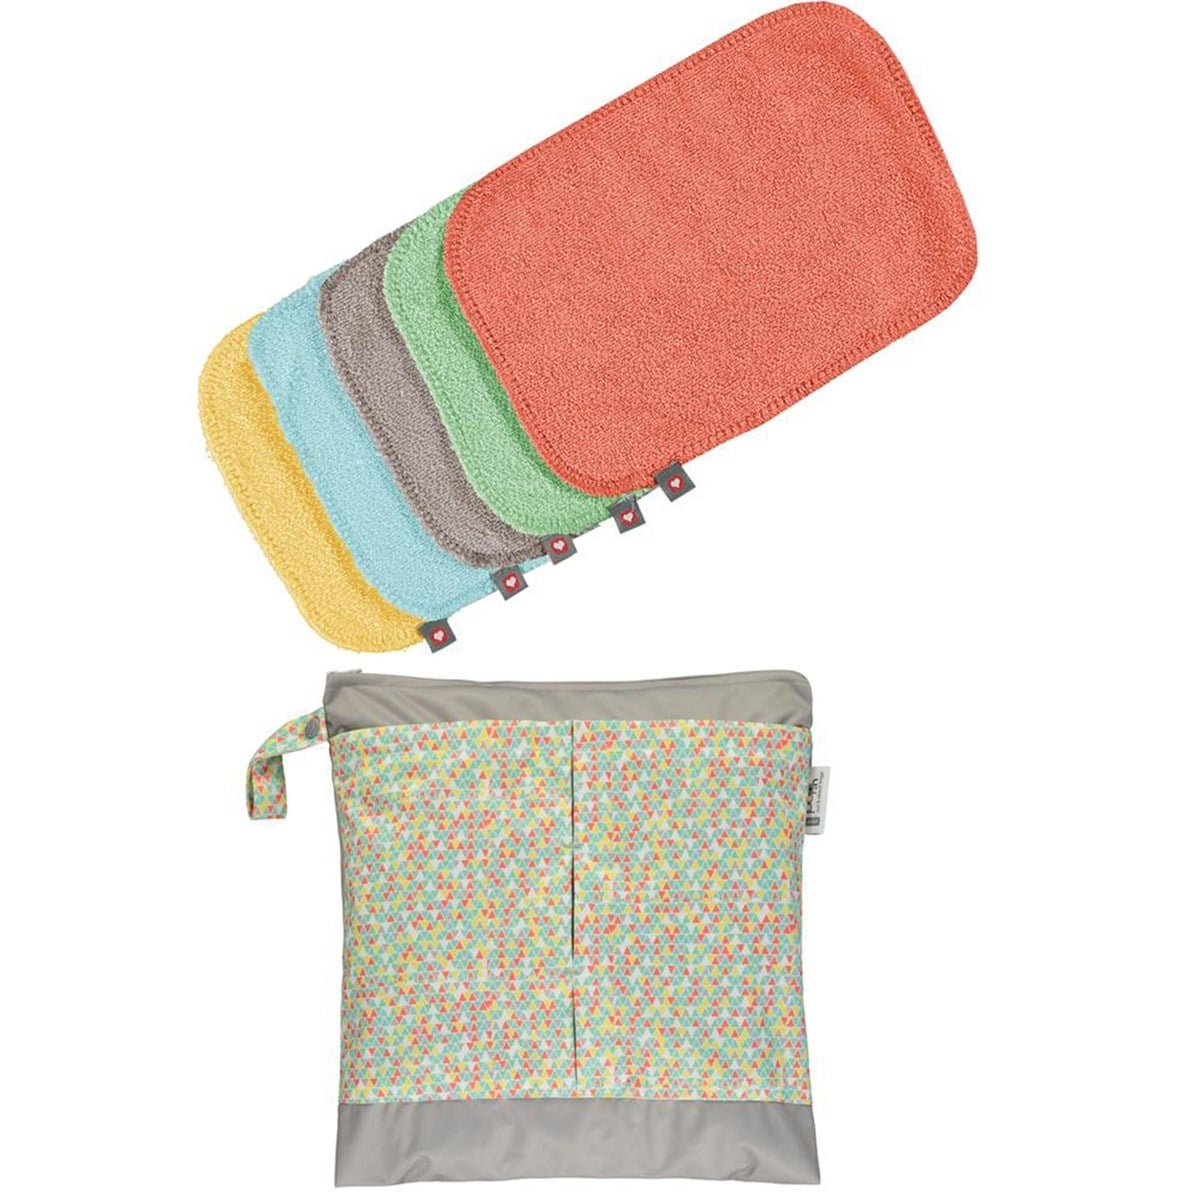 Popin pack toallitas lavables colores pastel